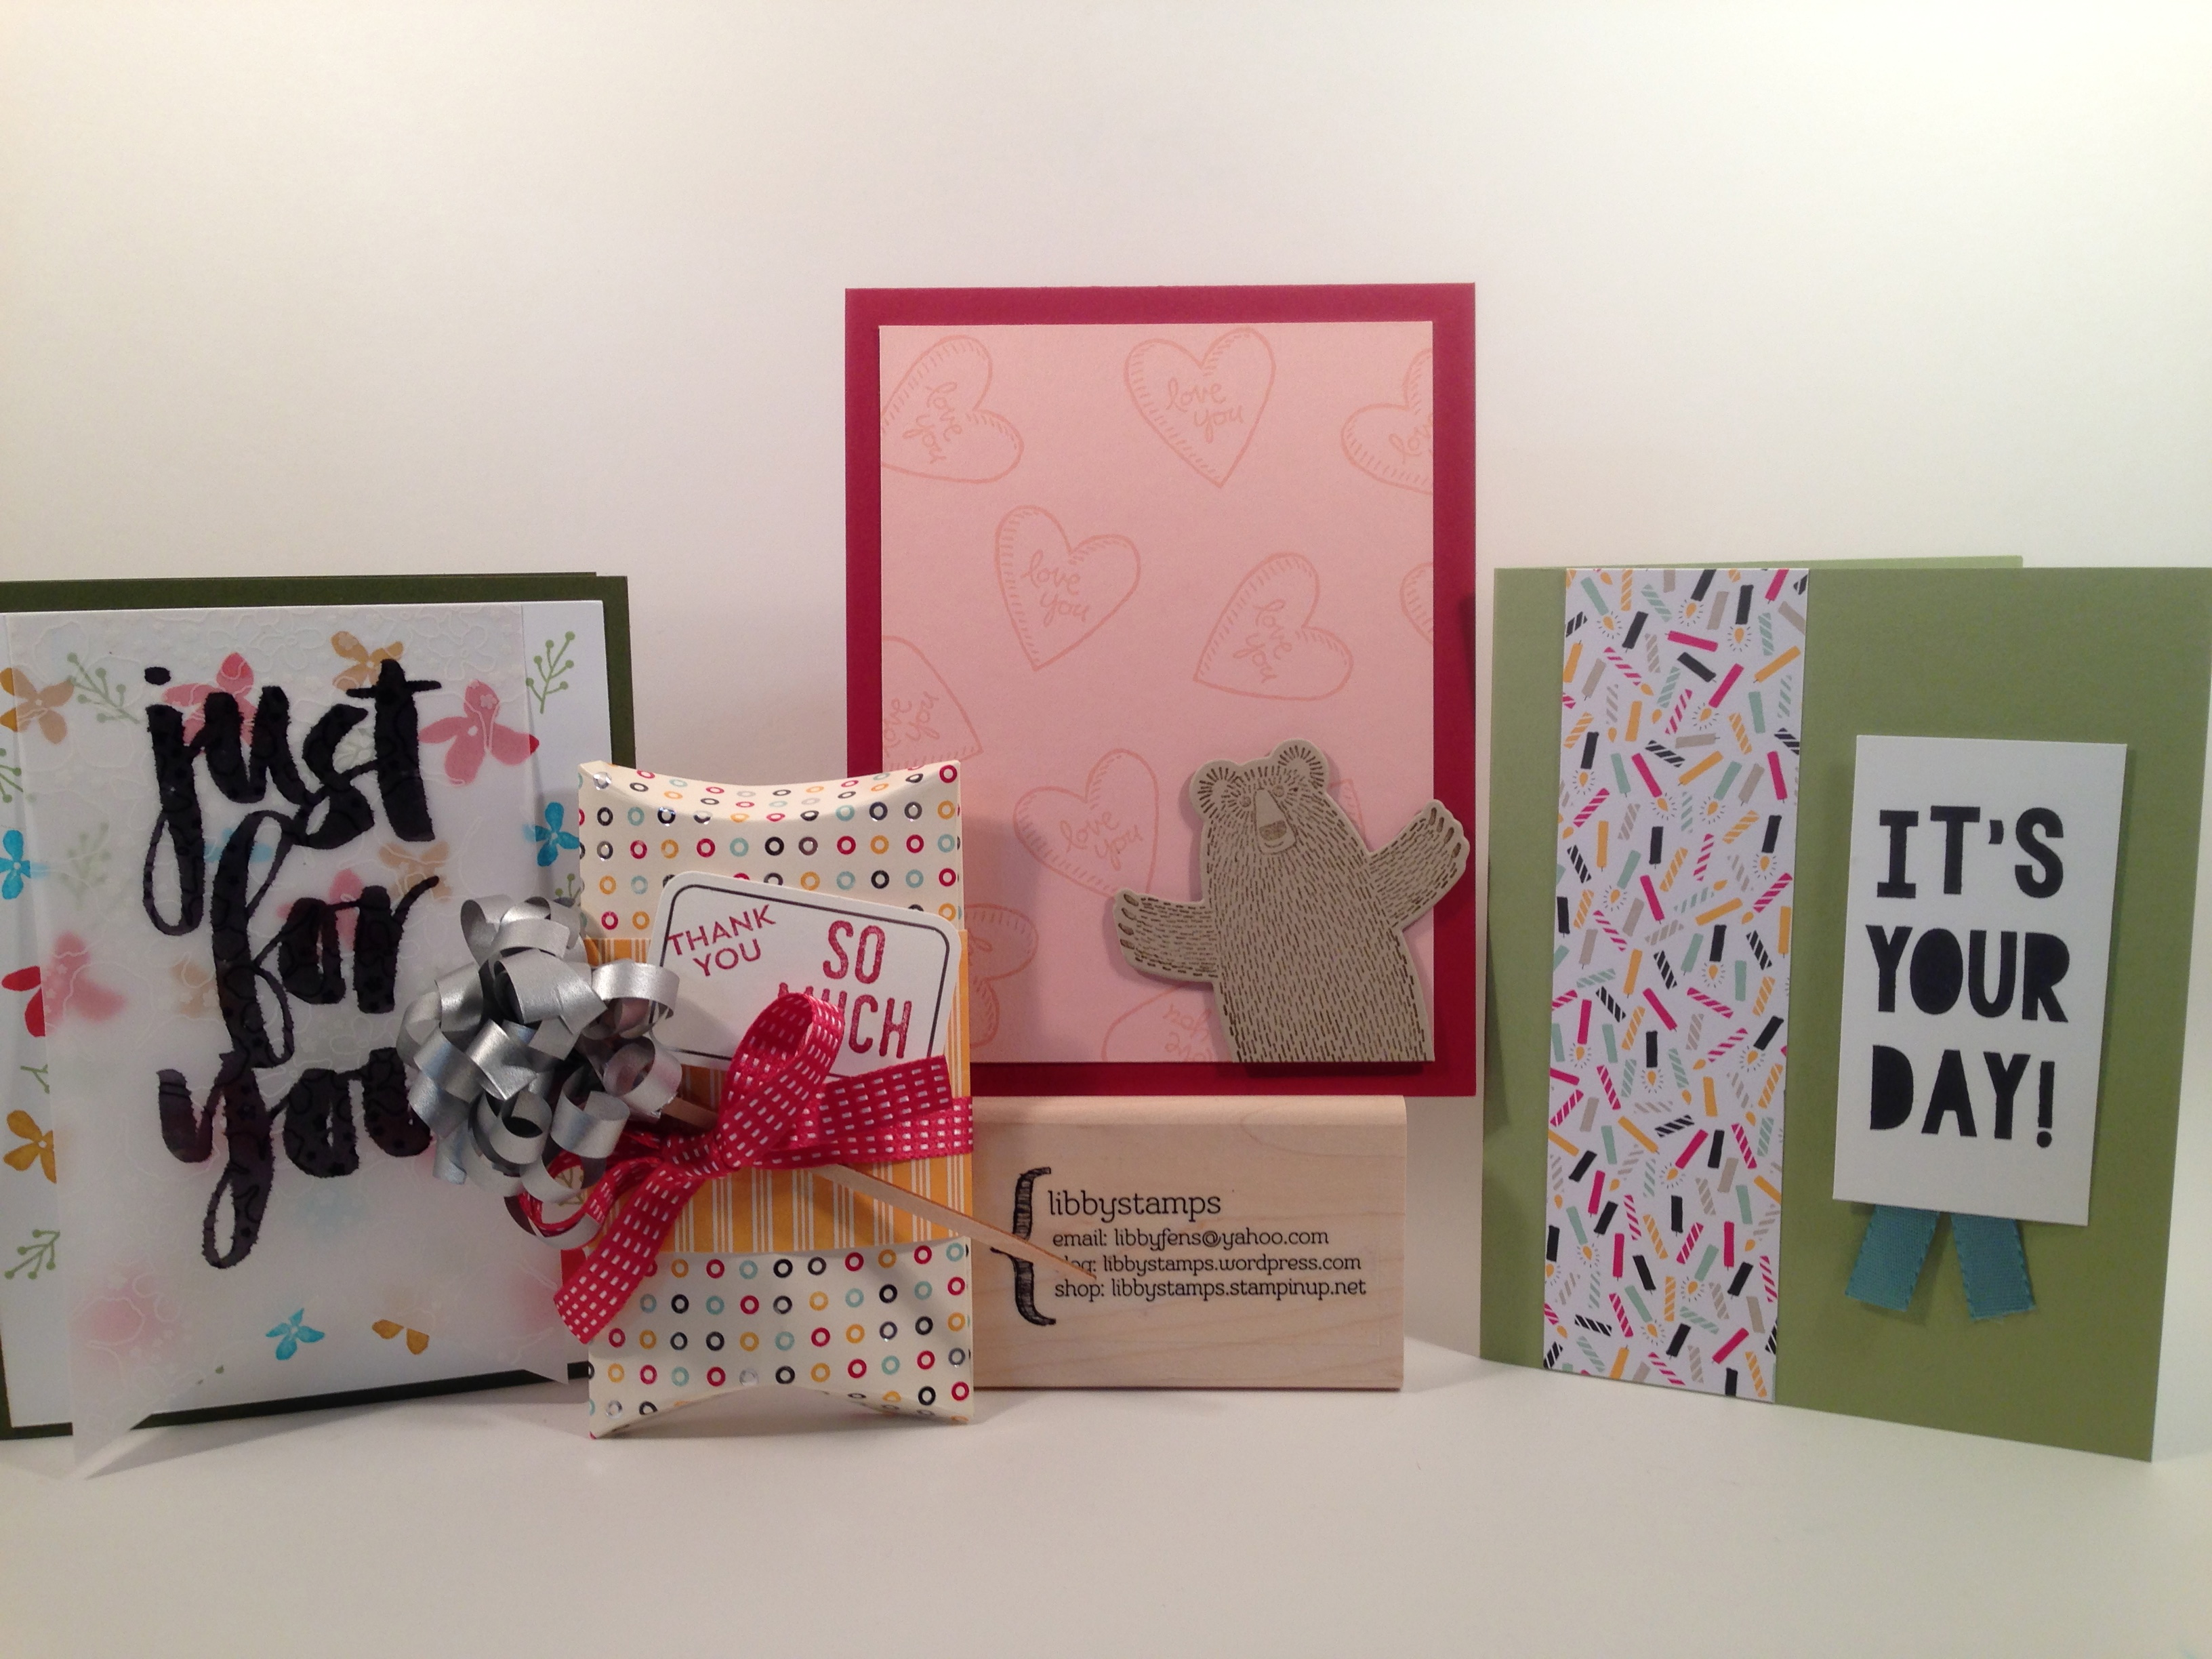 libbystamps, Stampin Up, Party Pop-Up Thinlits, Bear Hugs, Bear Hugs Framelits, It's My Party DSP, Botanicals For You, Botanical Gardens Vellum